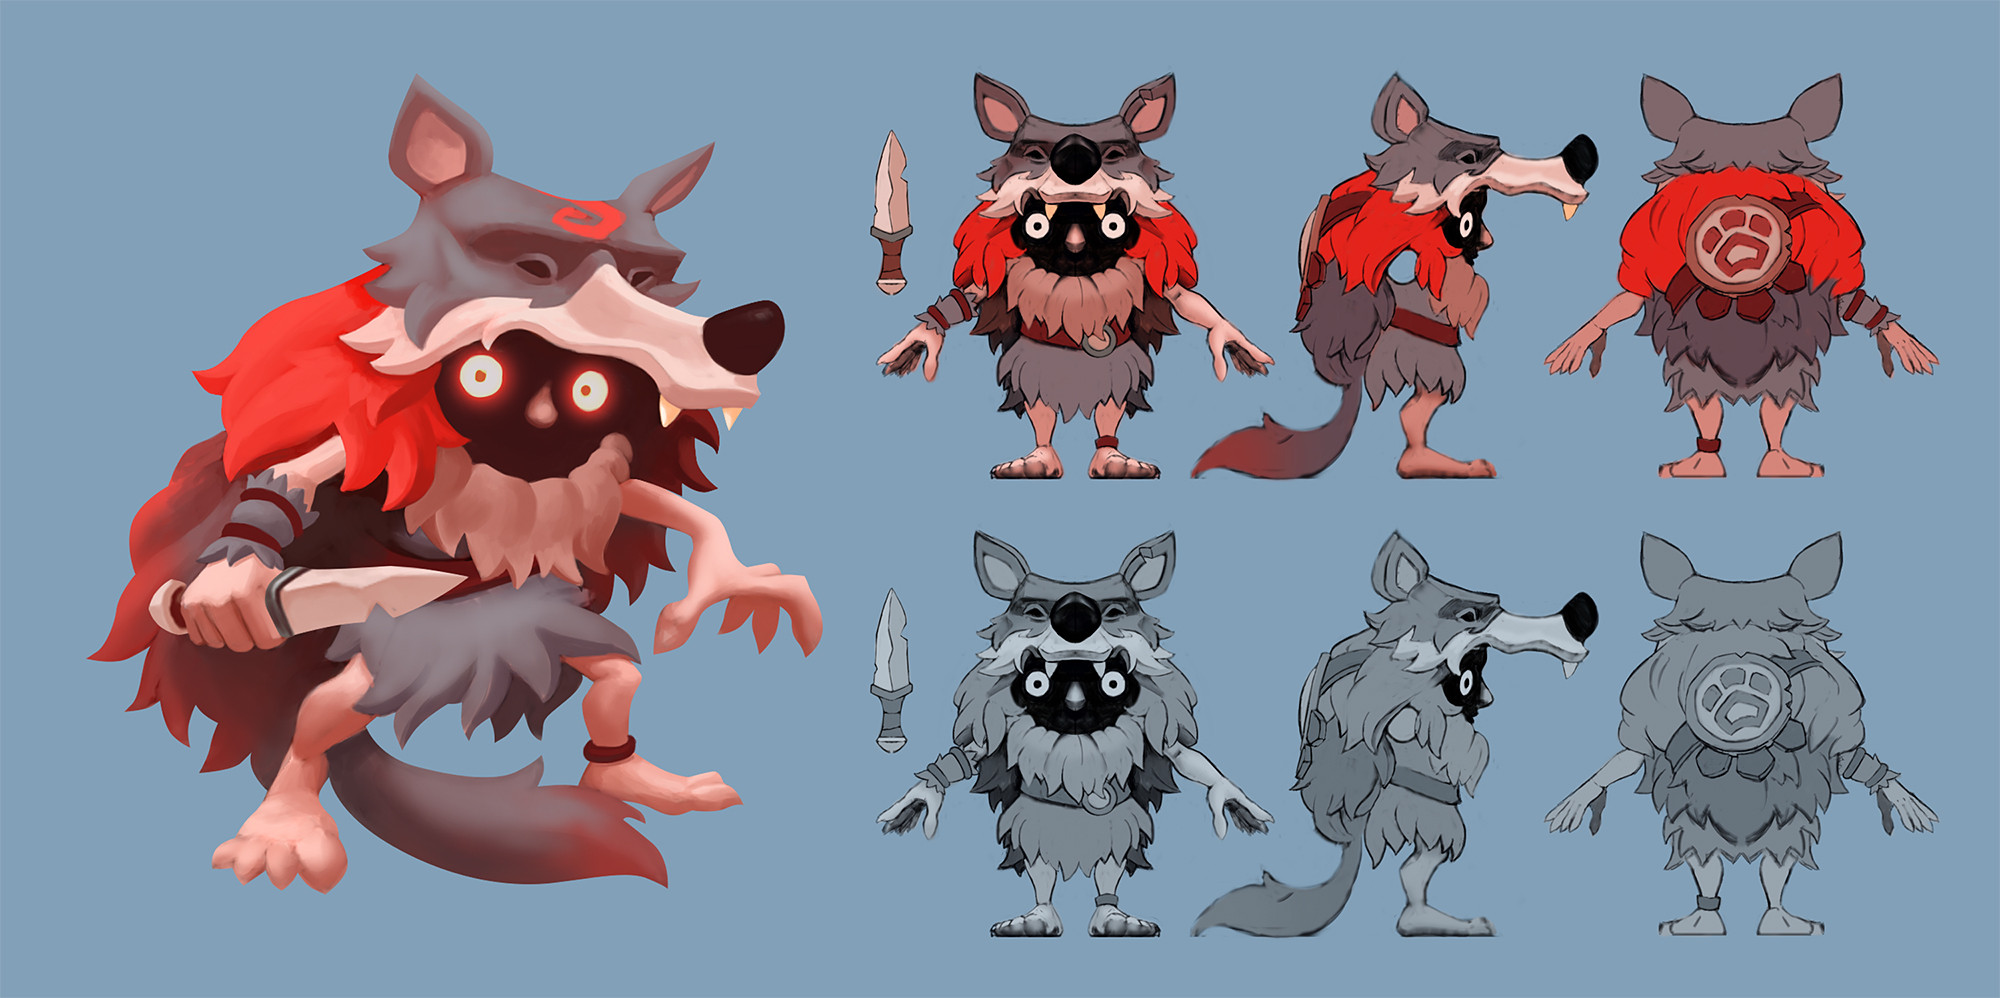 Based on this concept art, courtesy of Snowprint Studios.